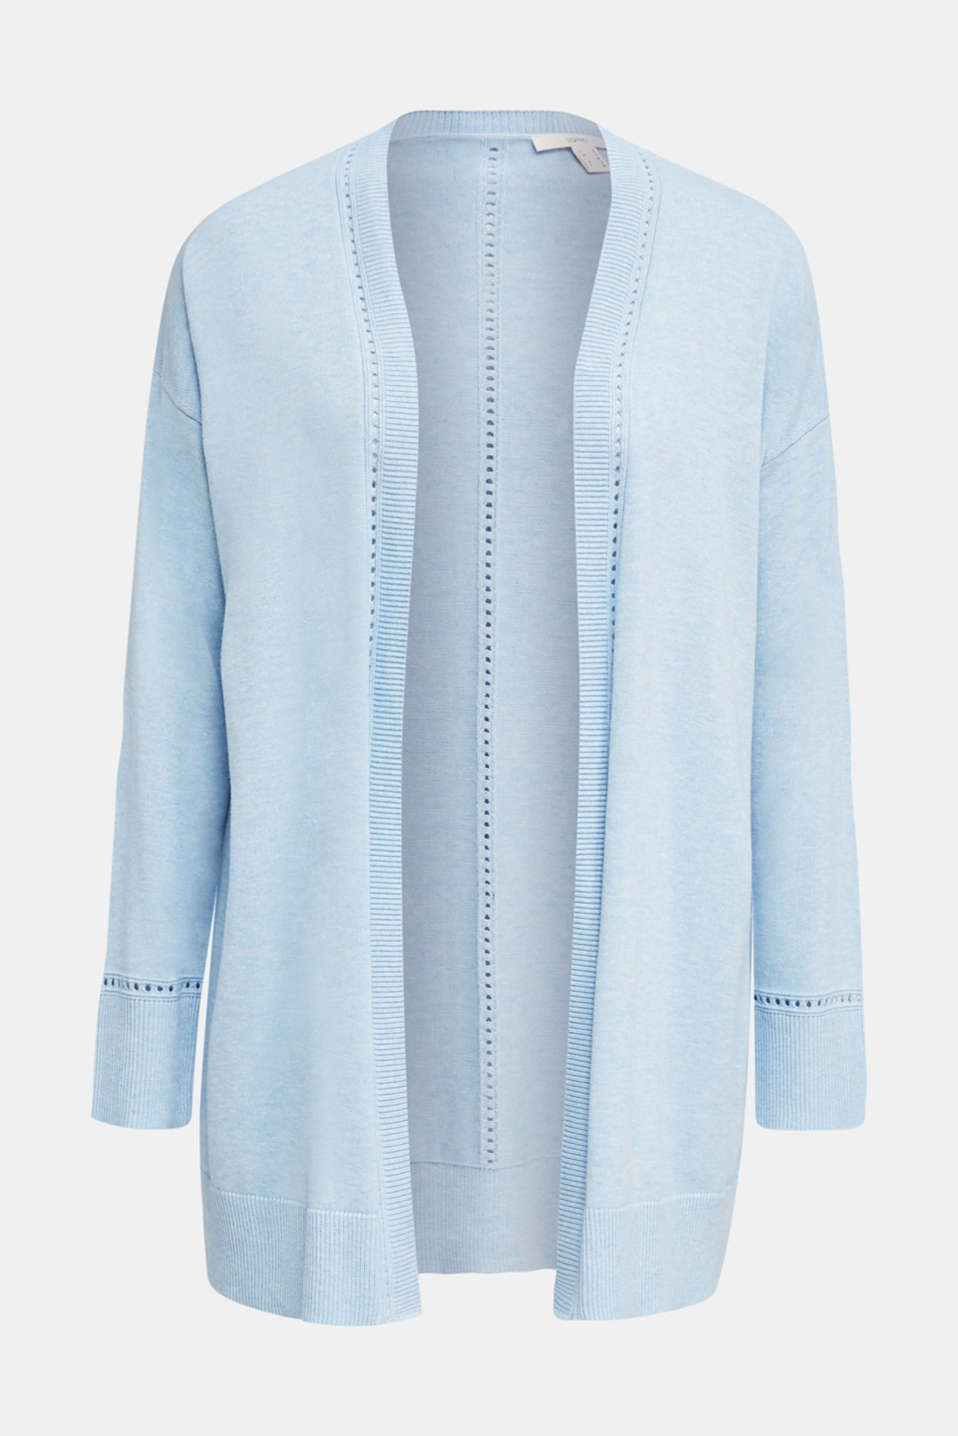 Cardigan with open-work pattern details, LIGHT BLUE, detail image number 5